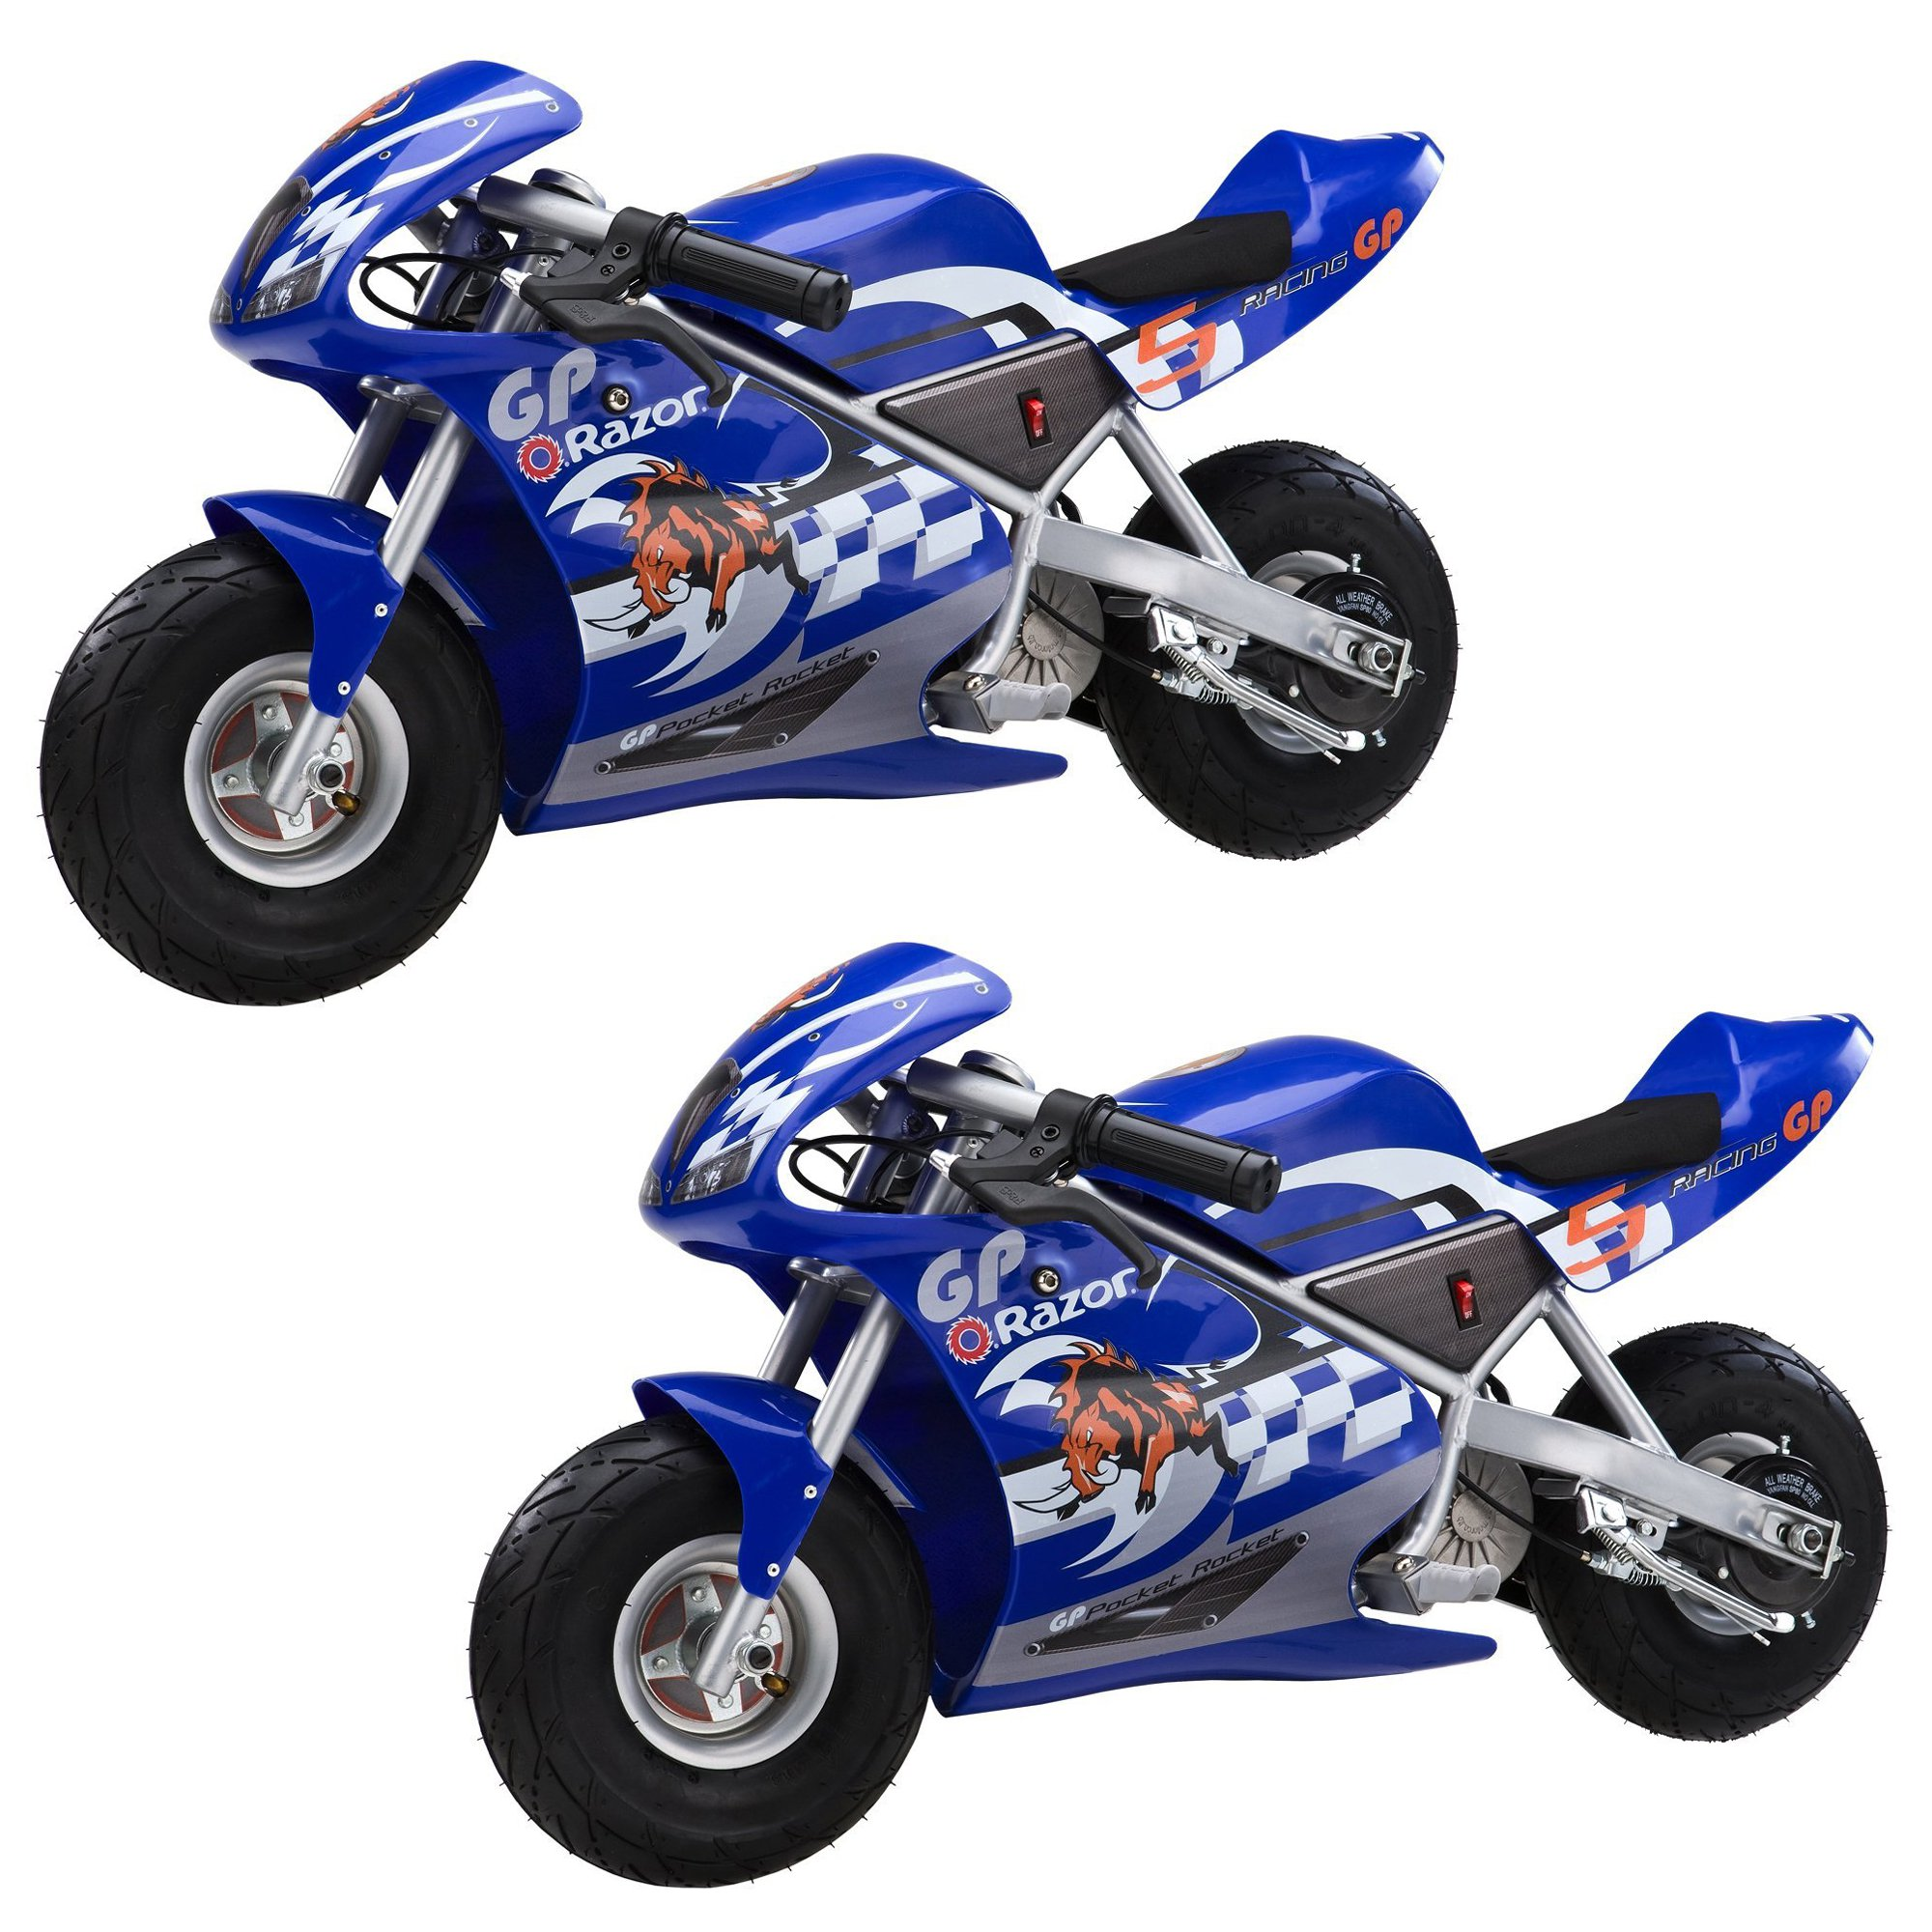 Razor Mini Electric Single Speed Racing Motorcycle Pocket Rockets, Blue (2 Pack)